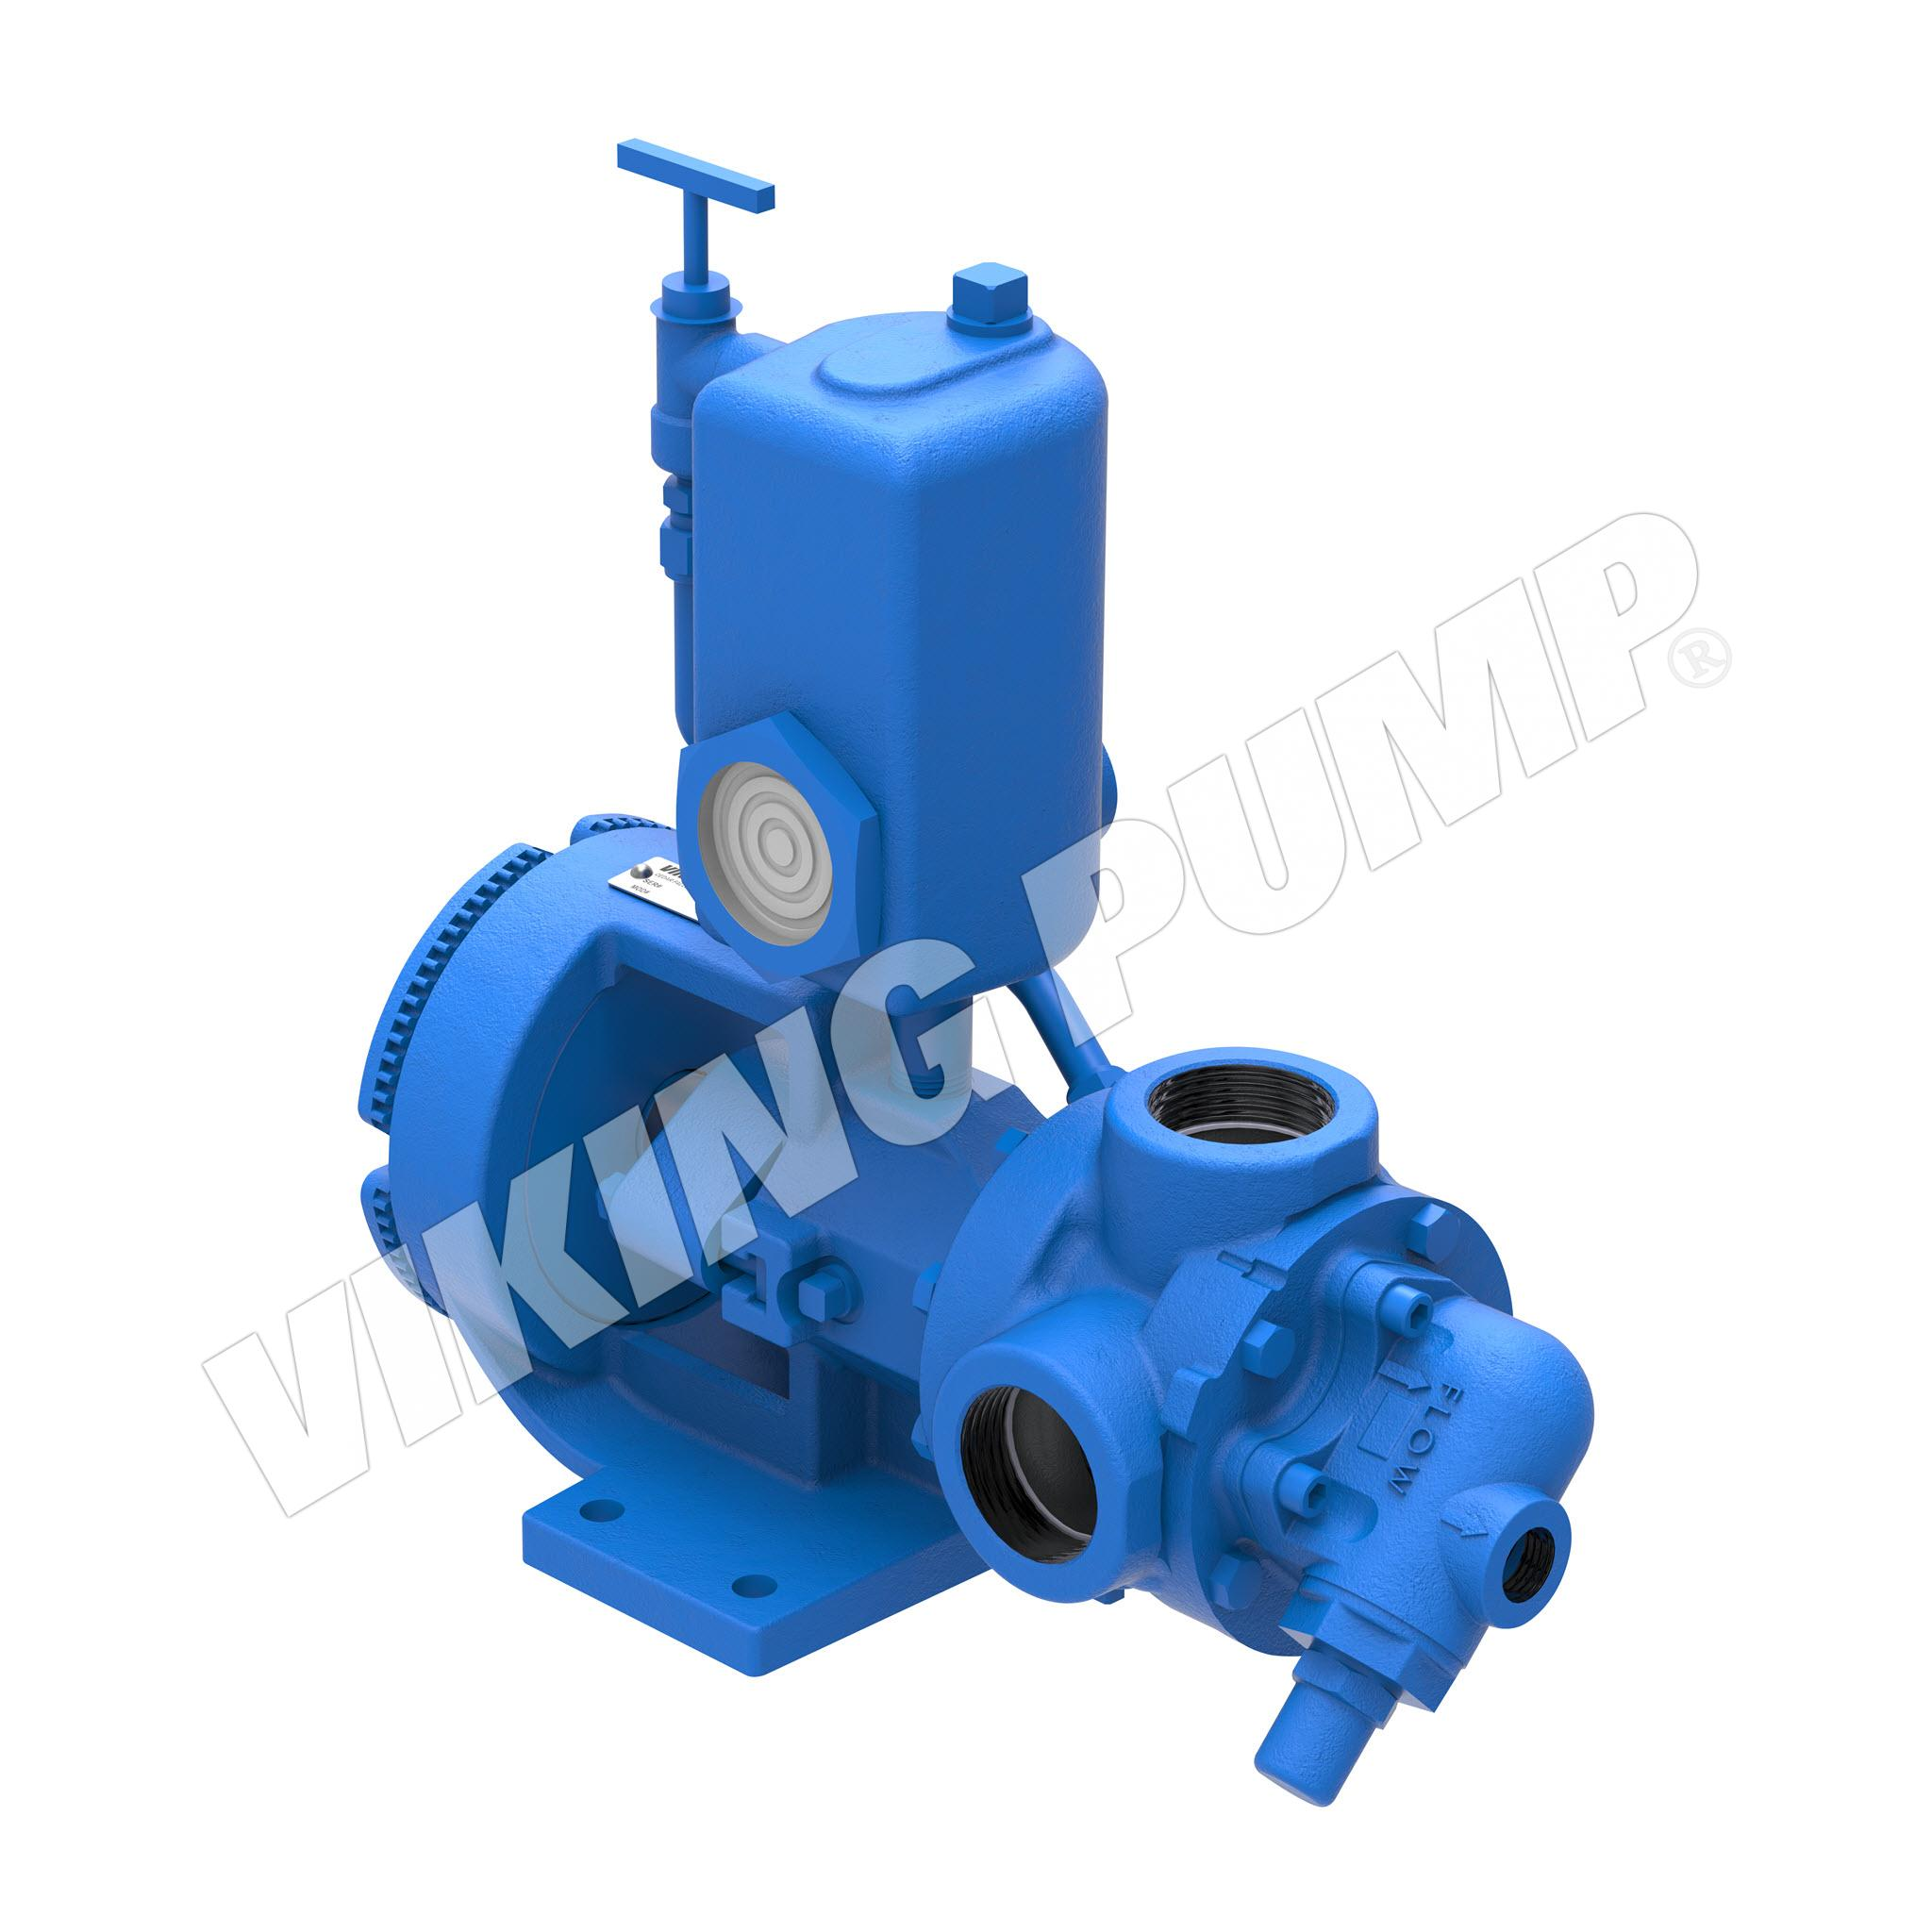 Model HL4924A, Double Seal with Reservoir, Relief Valve Pump